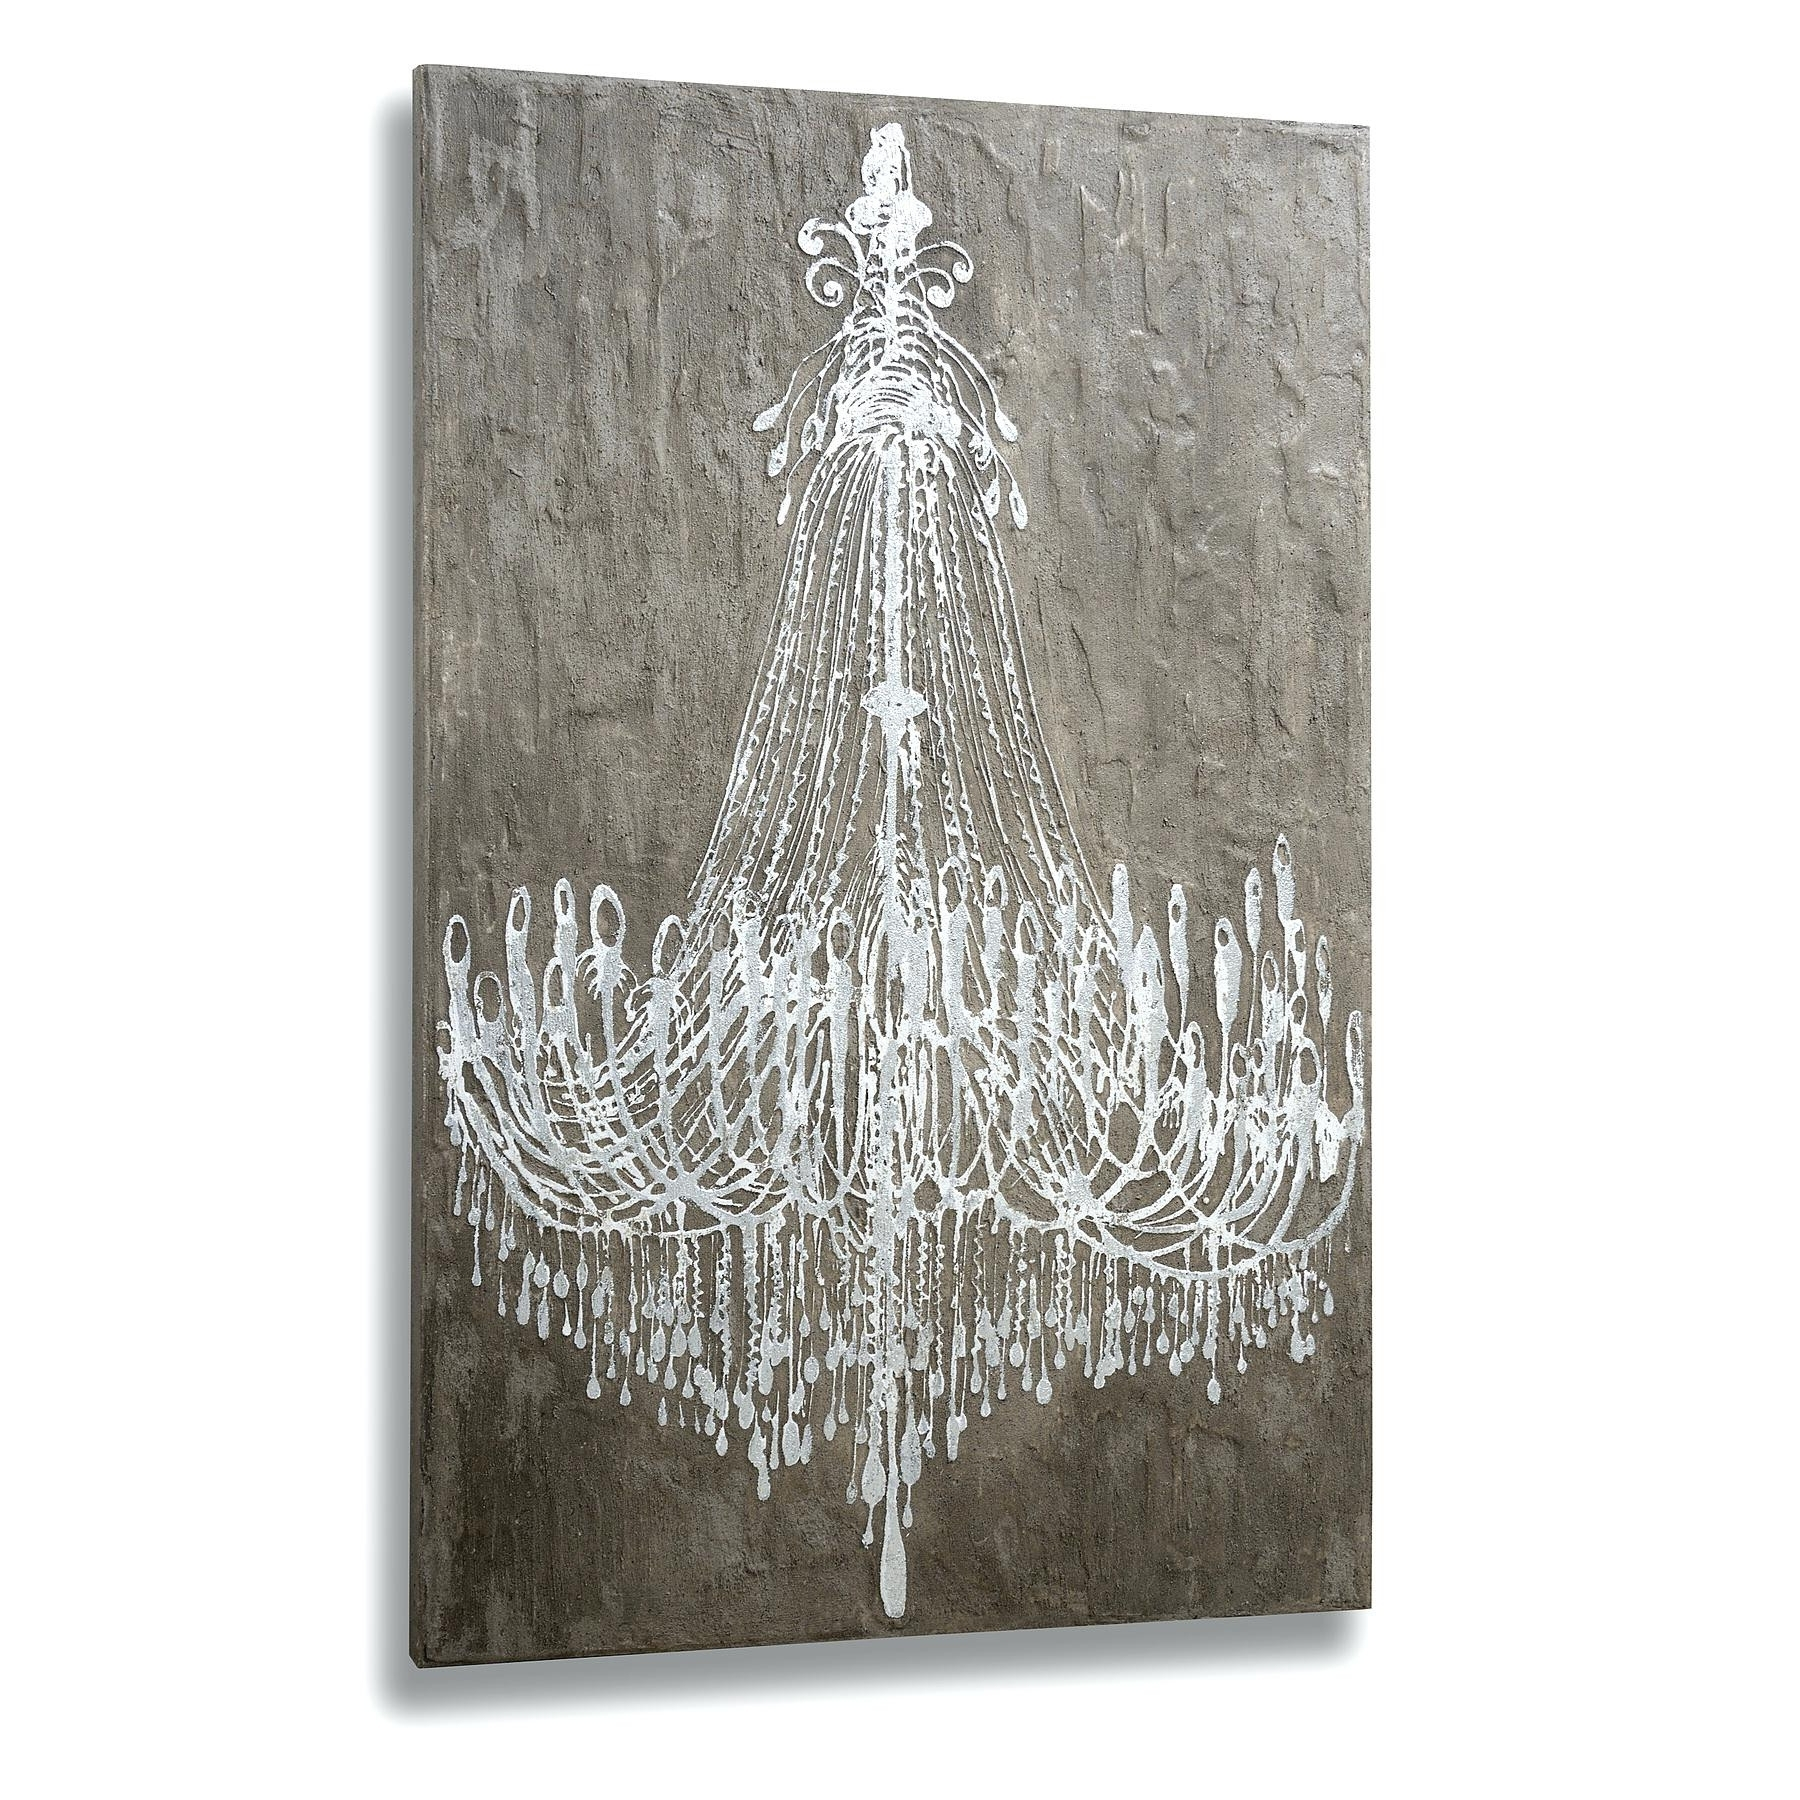 Widely Used Chandelier Canvas Art Unique Wall Ideas Chandelier Wall Art With Chandelier Canvas Wall Art (View 15 of 15)